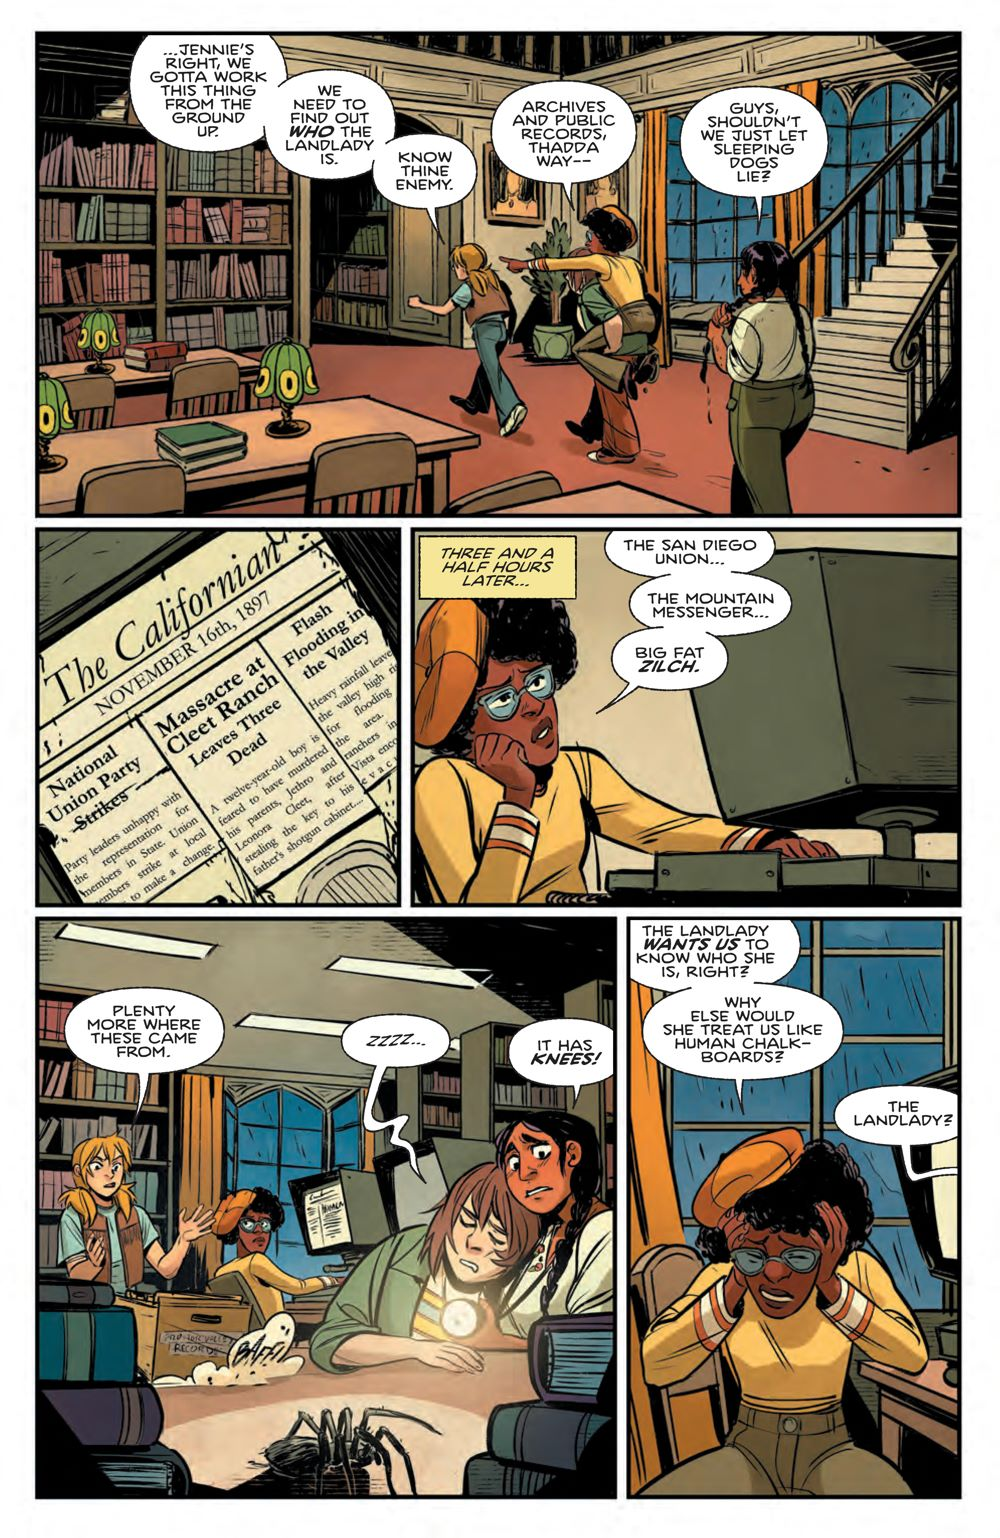 ProctorValleyRoad_003_PRESS_5 ComicList Previews: PROCTOR VALLEY ROAD #3 (OF 5)